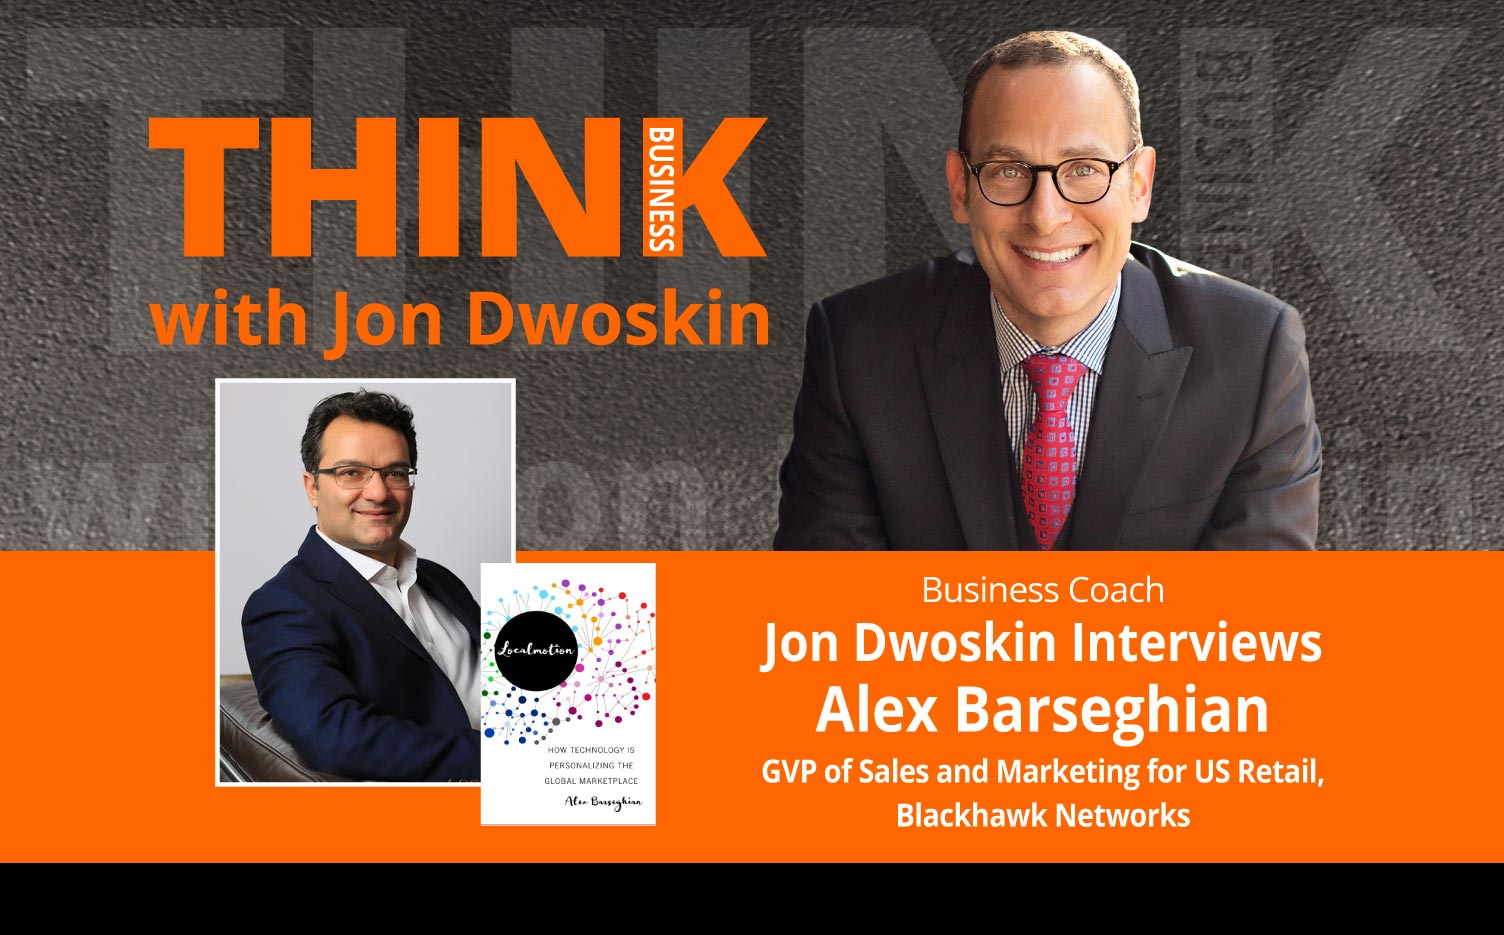 Jon Dwoskin Interviews Alex Barseghian, GVP of Sales and Marketing for US Retail, Blackhawk Networks